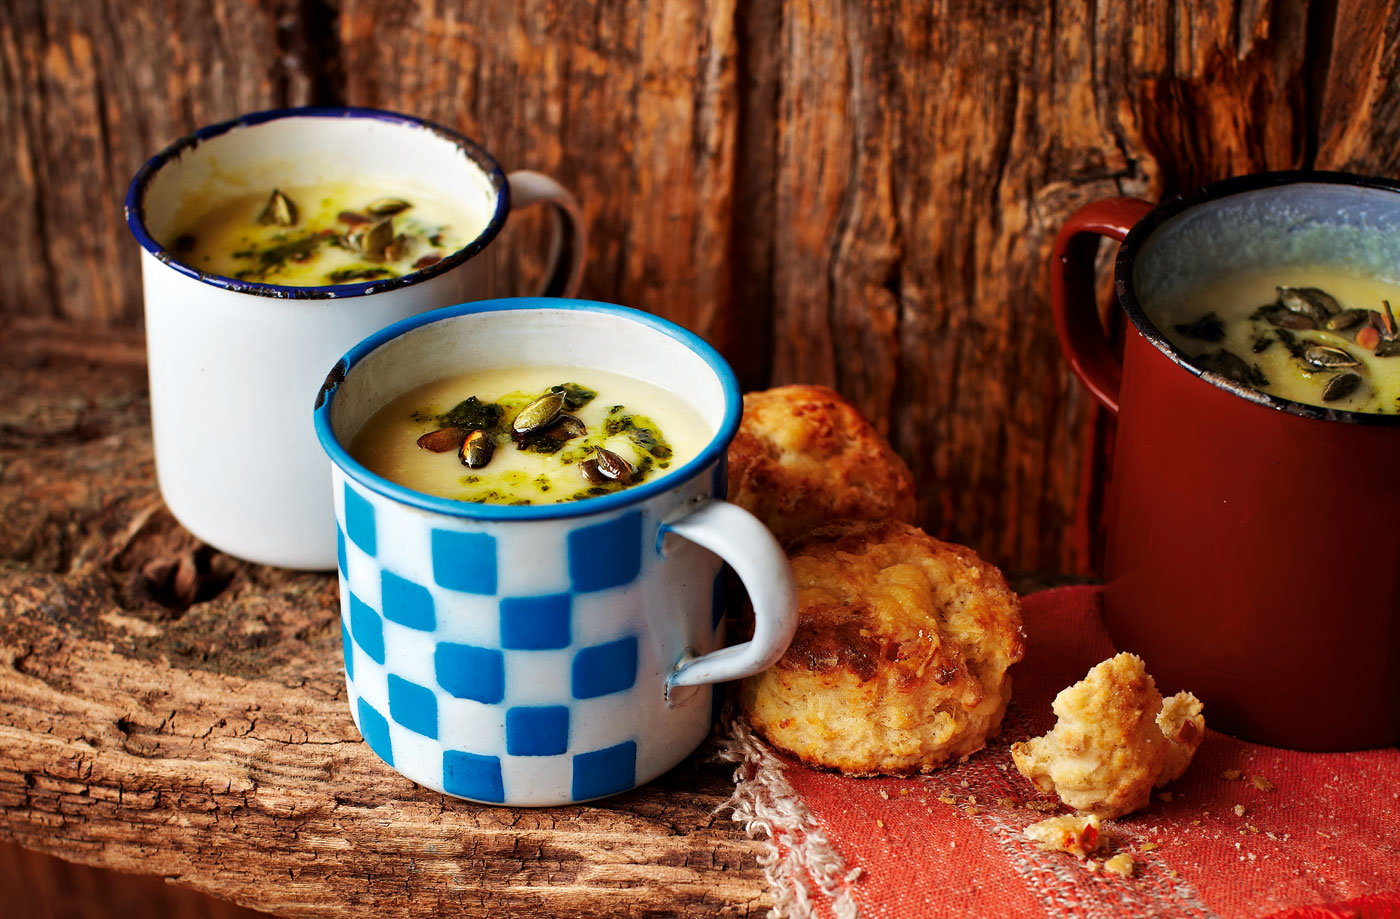 Spiced parsnip soup with coriander and chilli pesto recipe